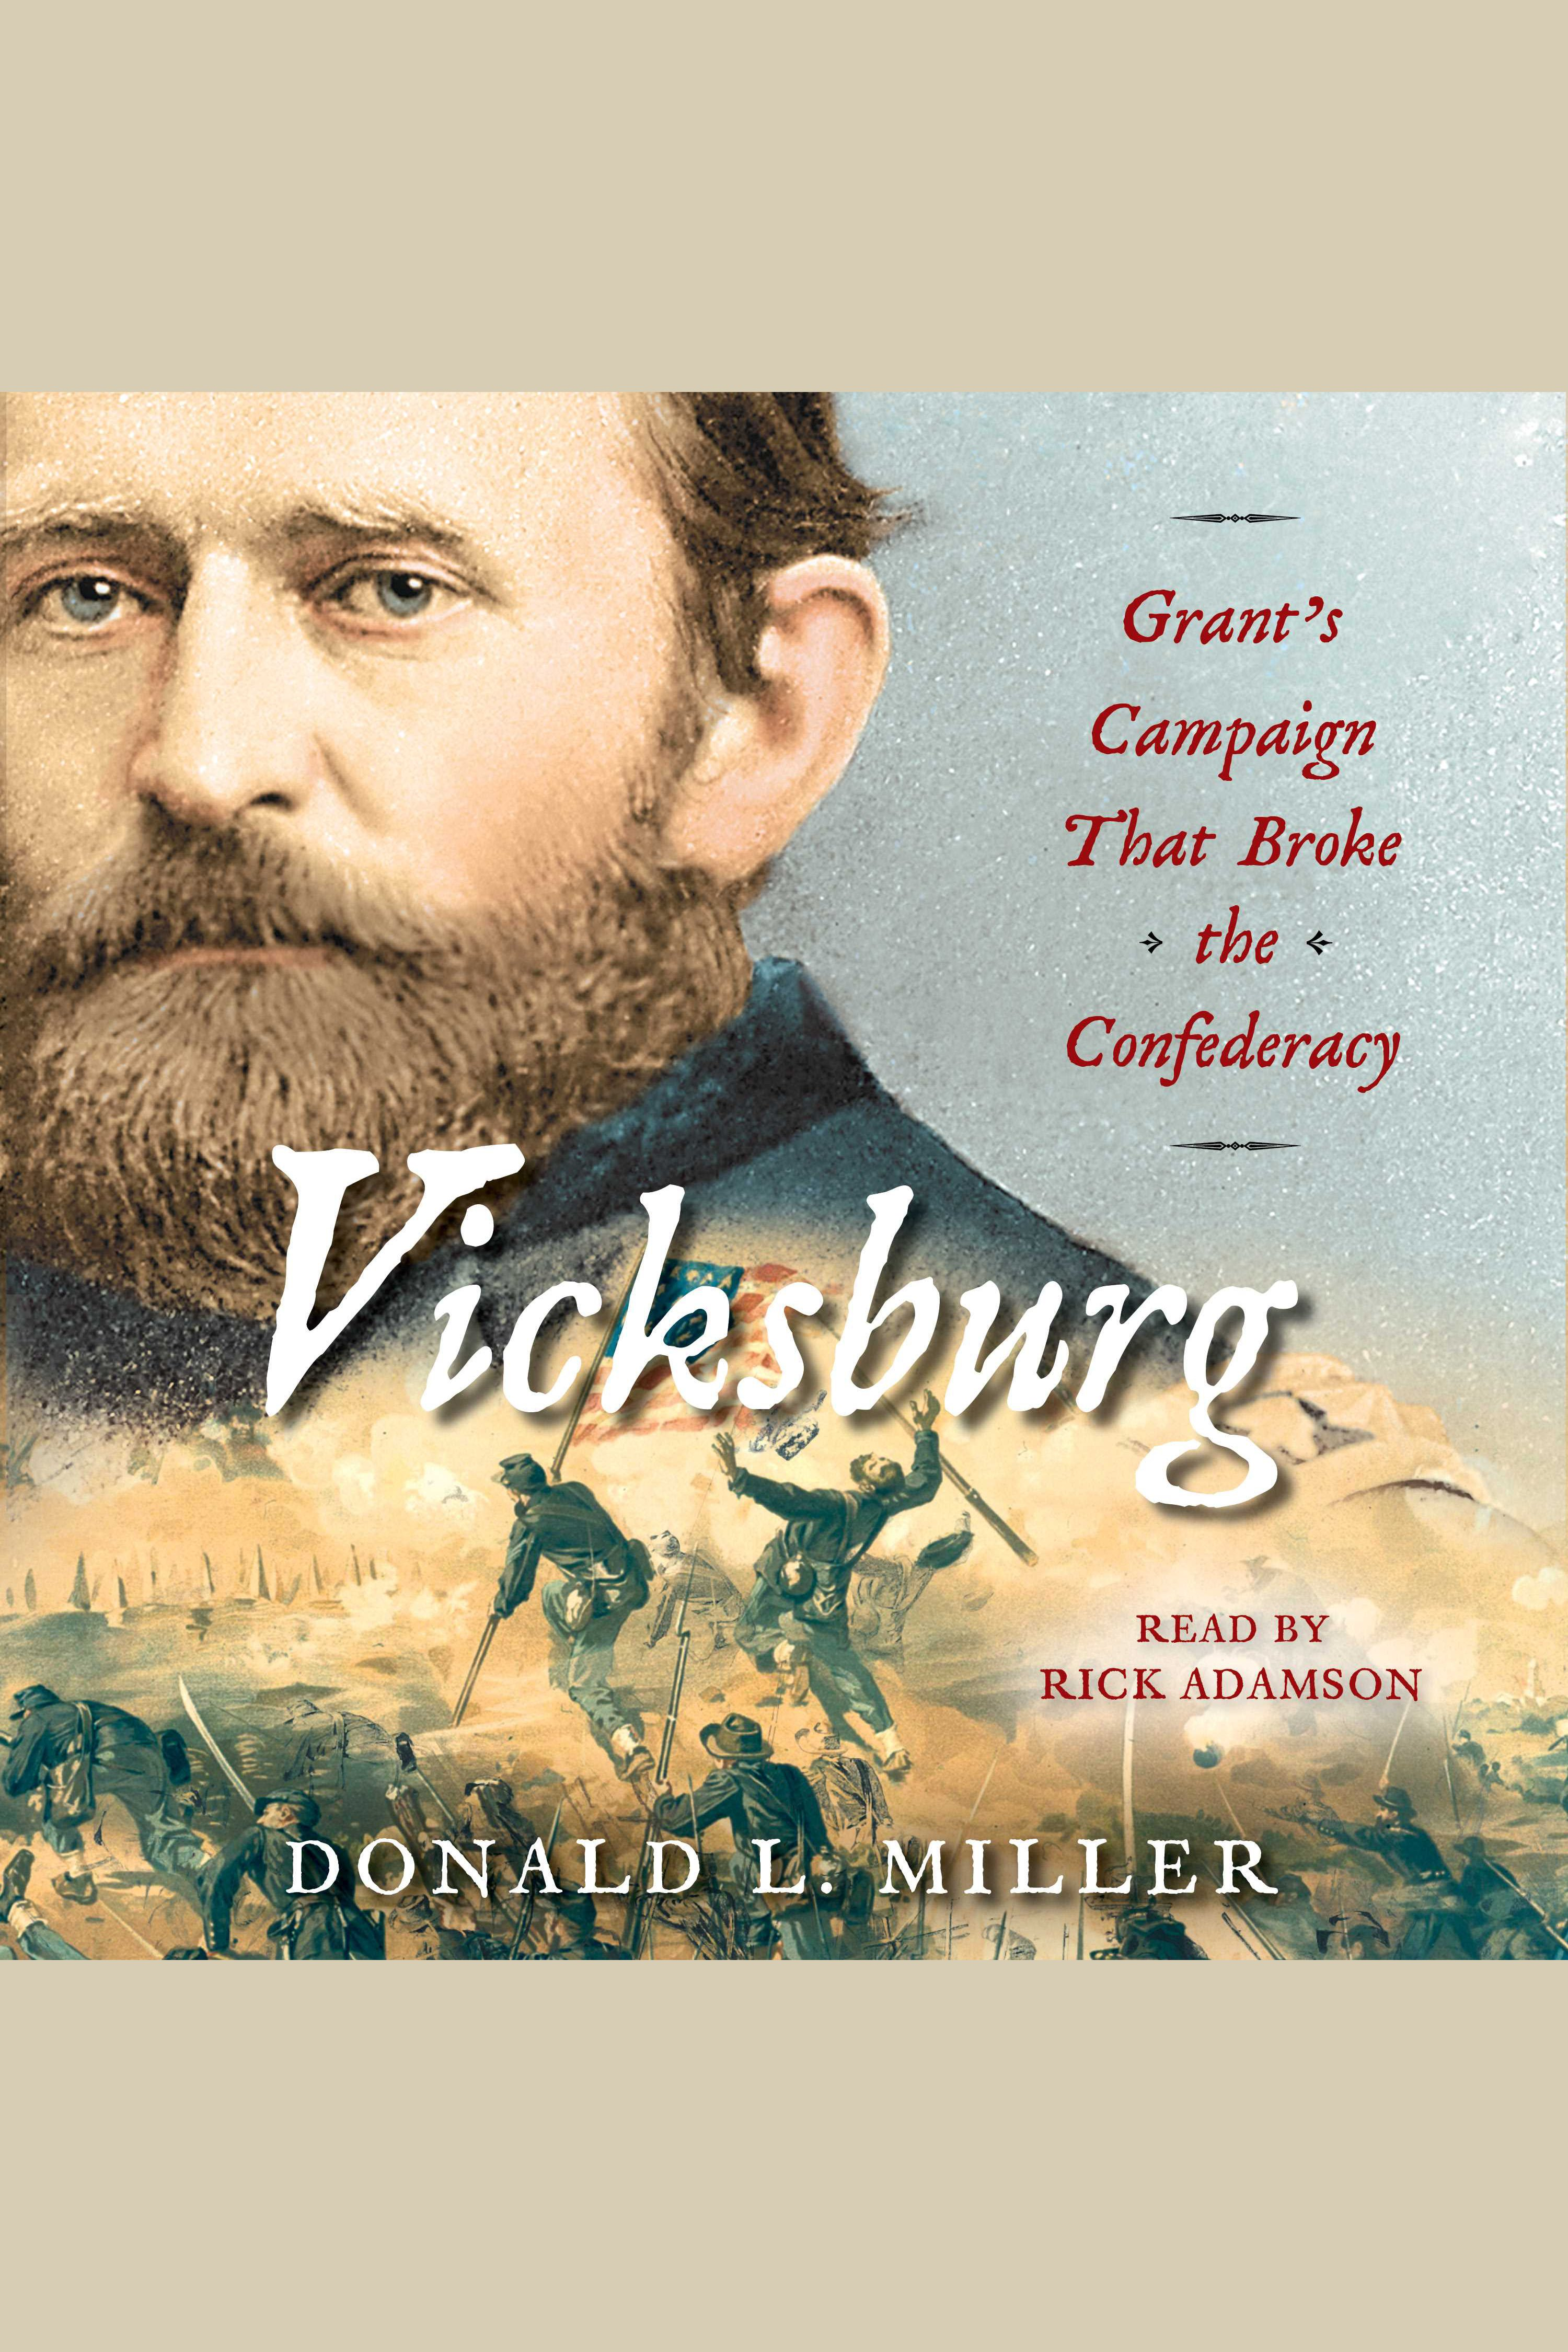 Vicksburg [electronic resource] : Grant's Campaign That Broke the Confederacy